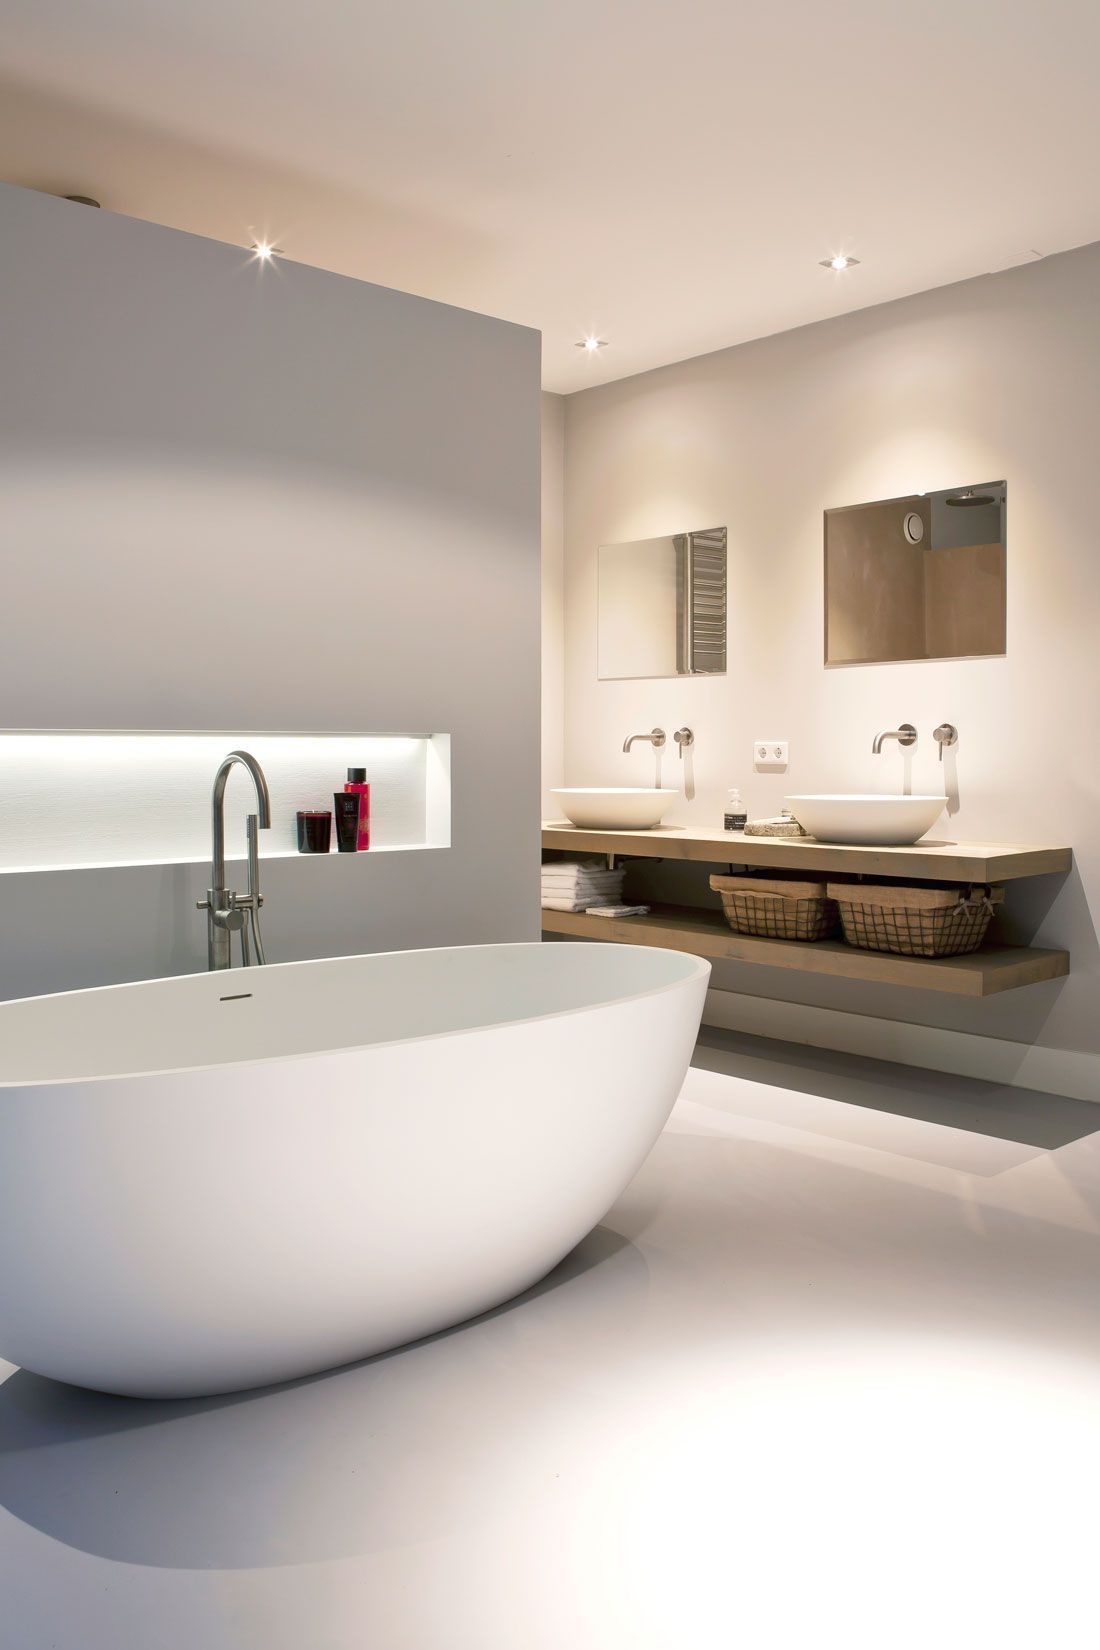 For The Past Year The Bathroom Design Ideas Were Dominated By All